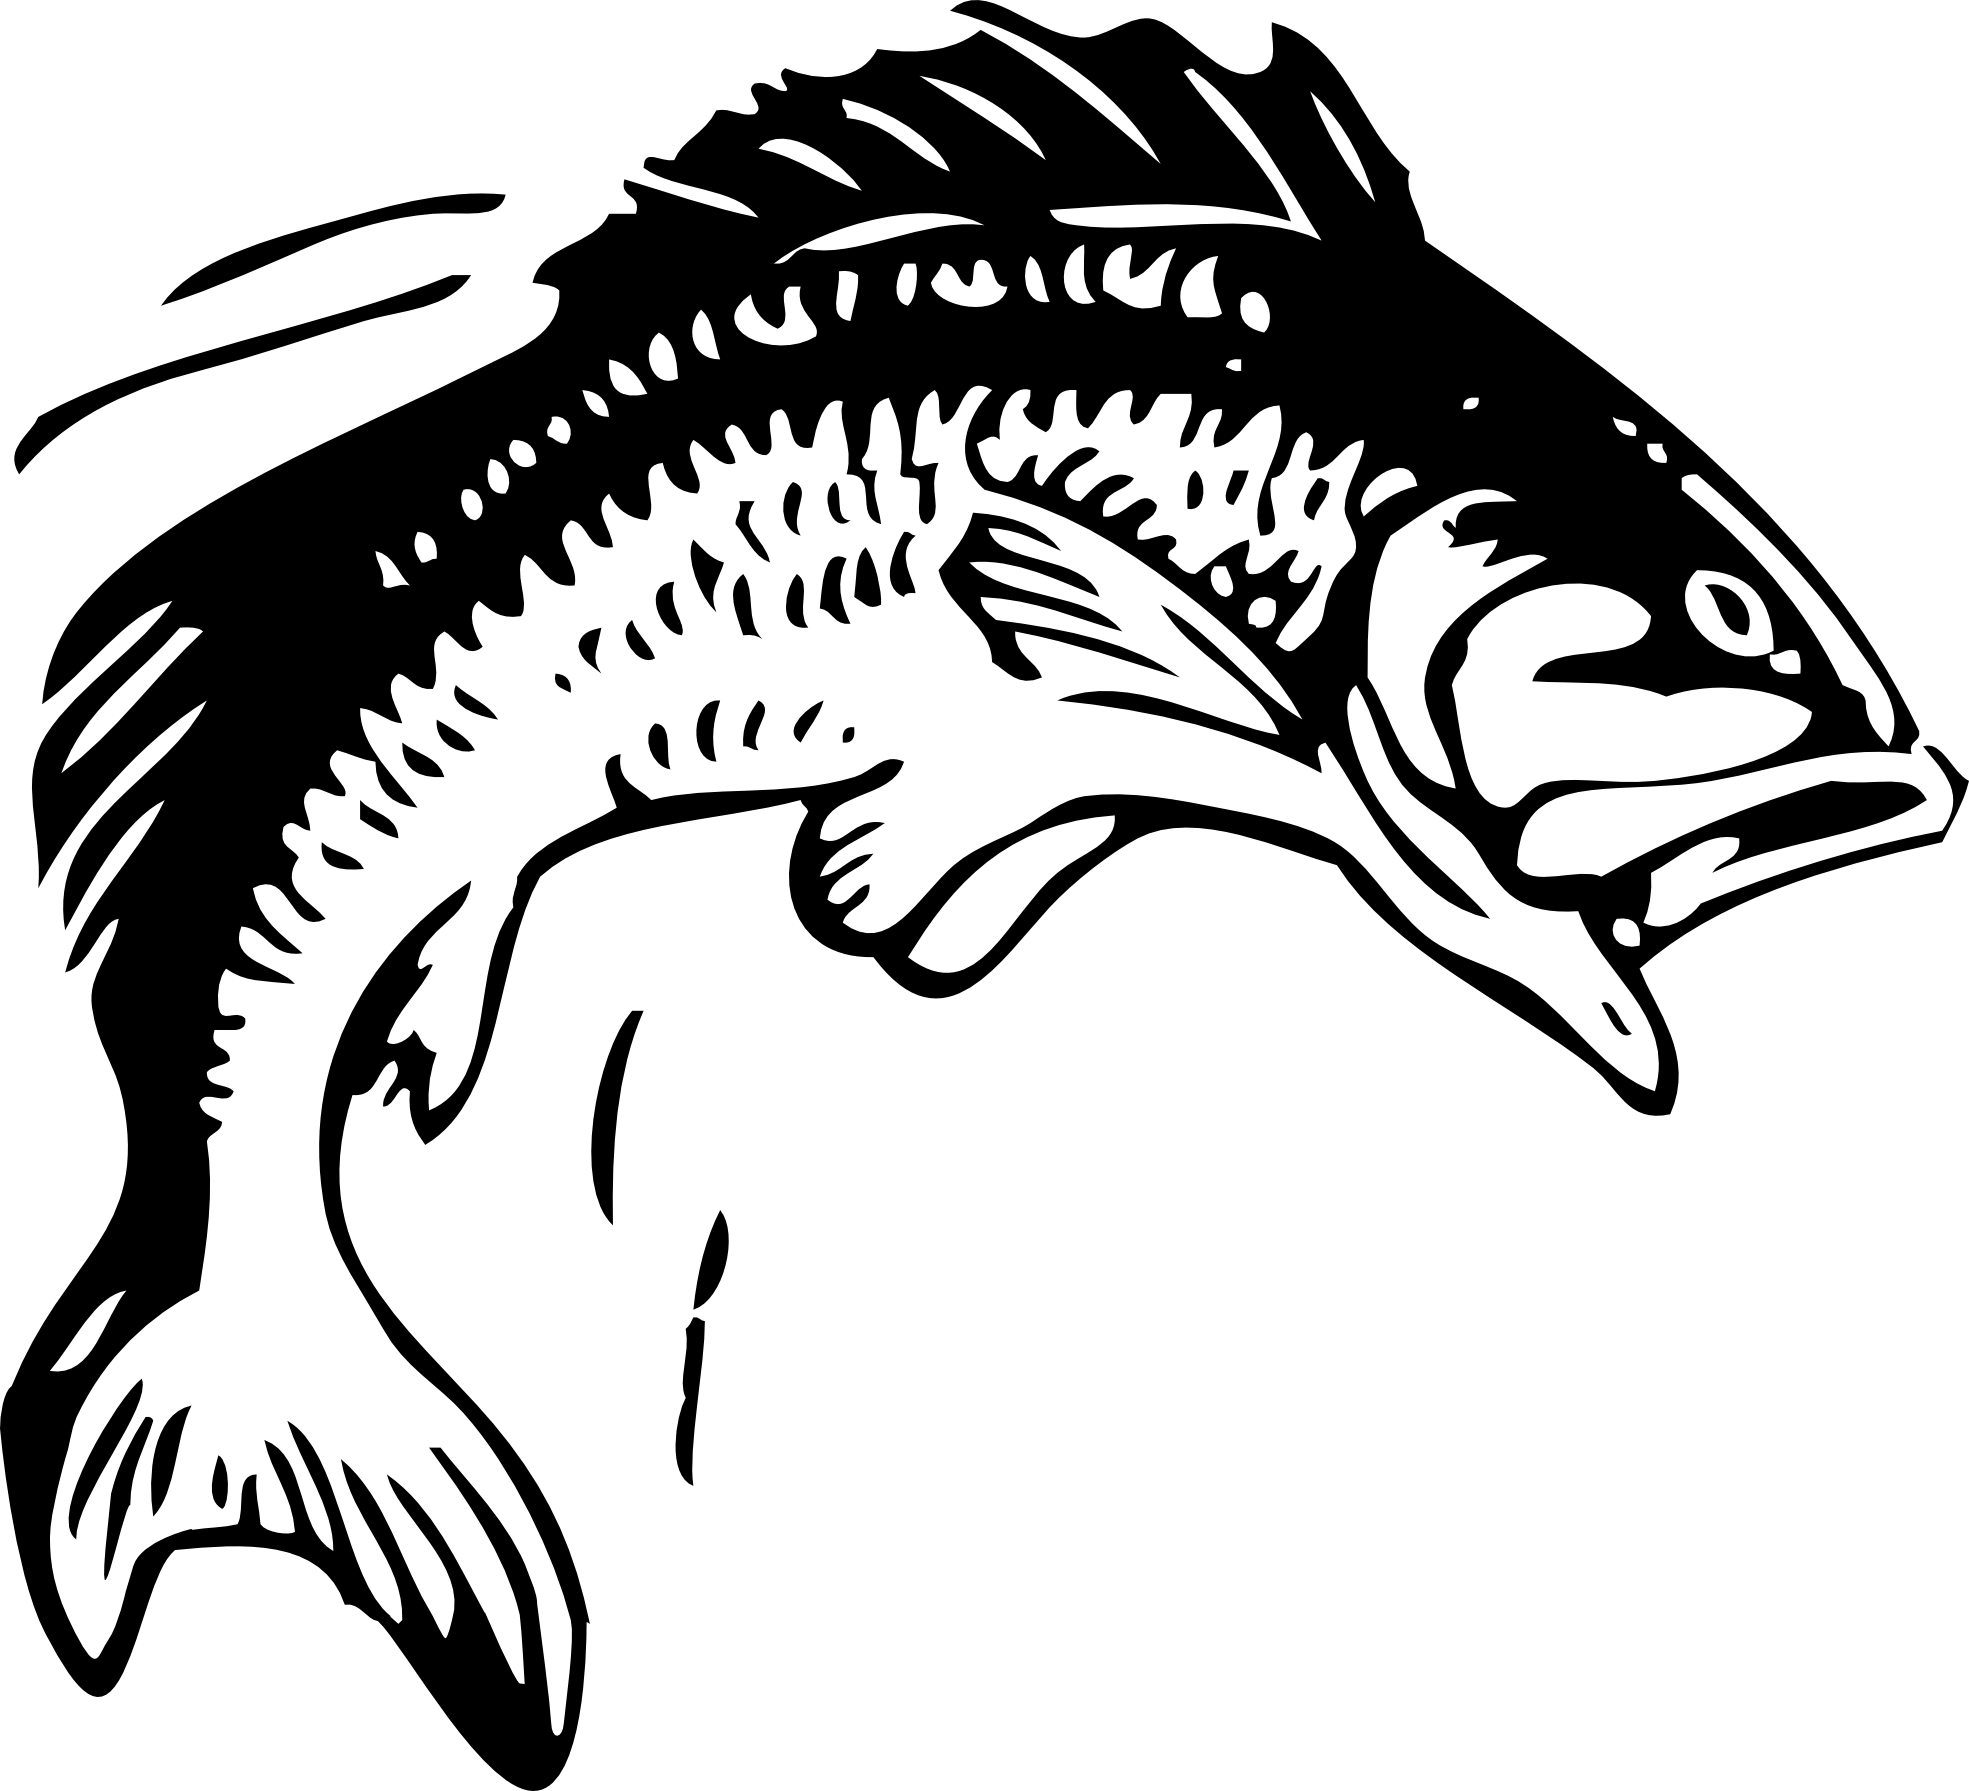 Line art best mountain. Fly fish clipart black and white